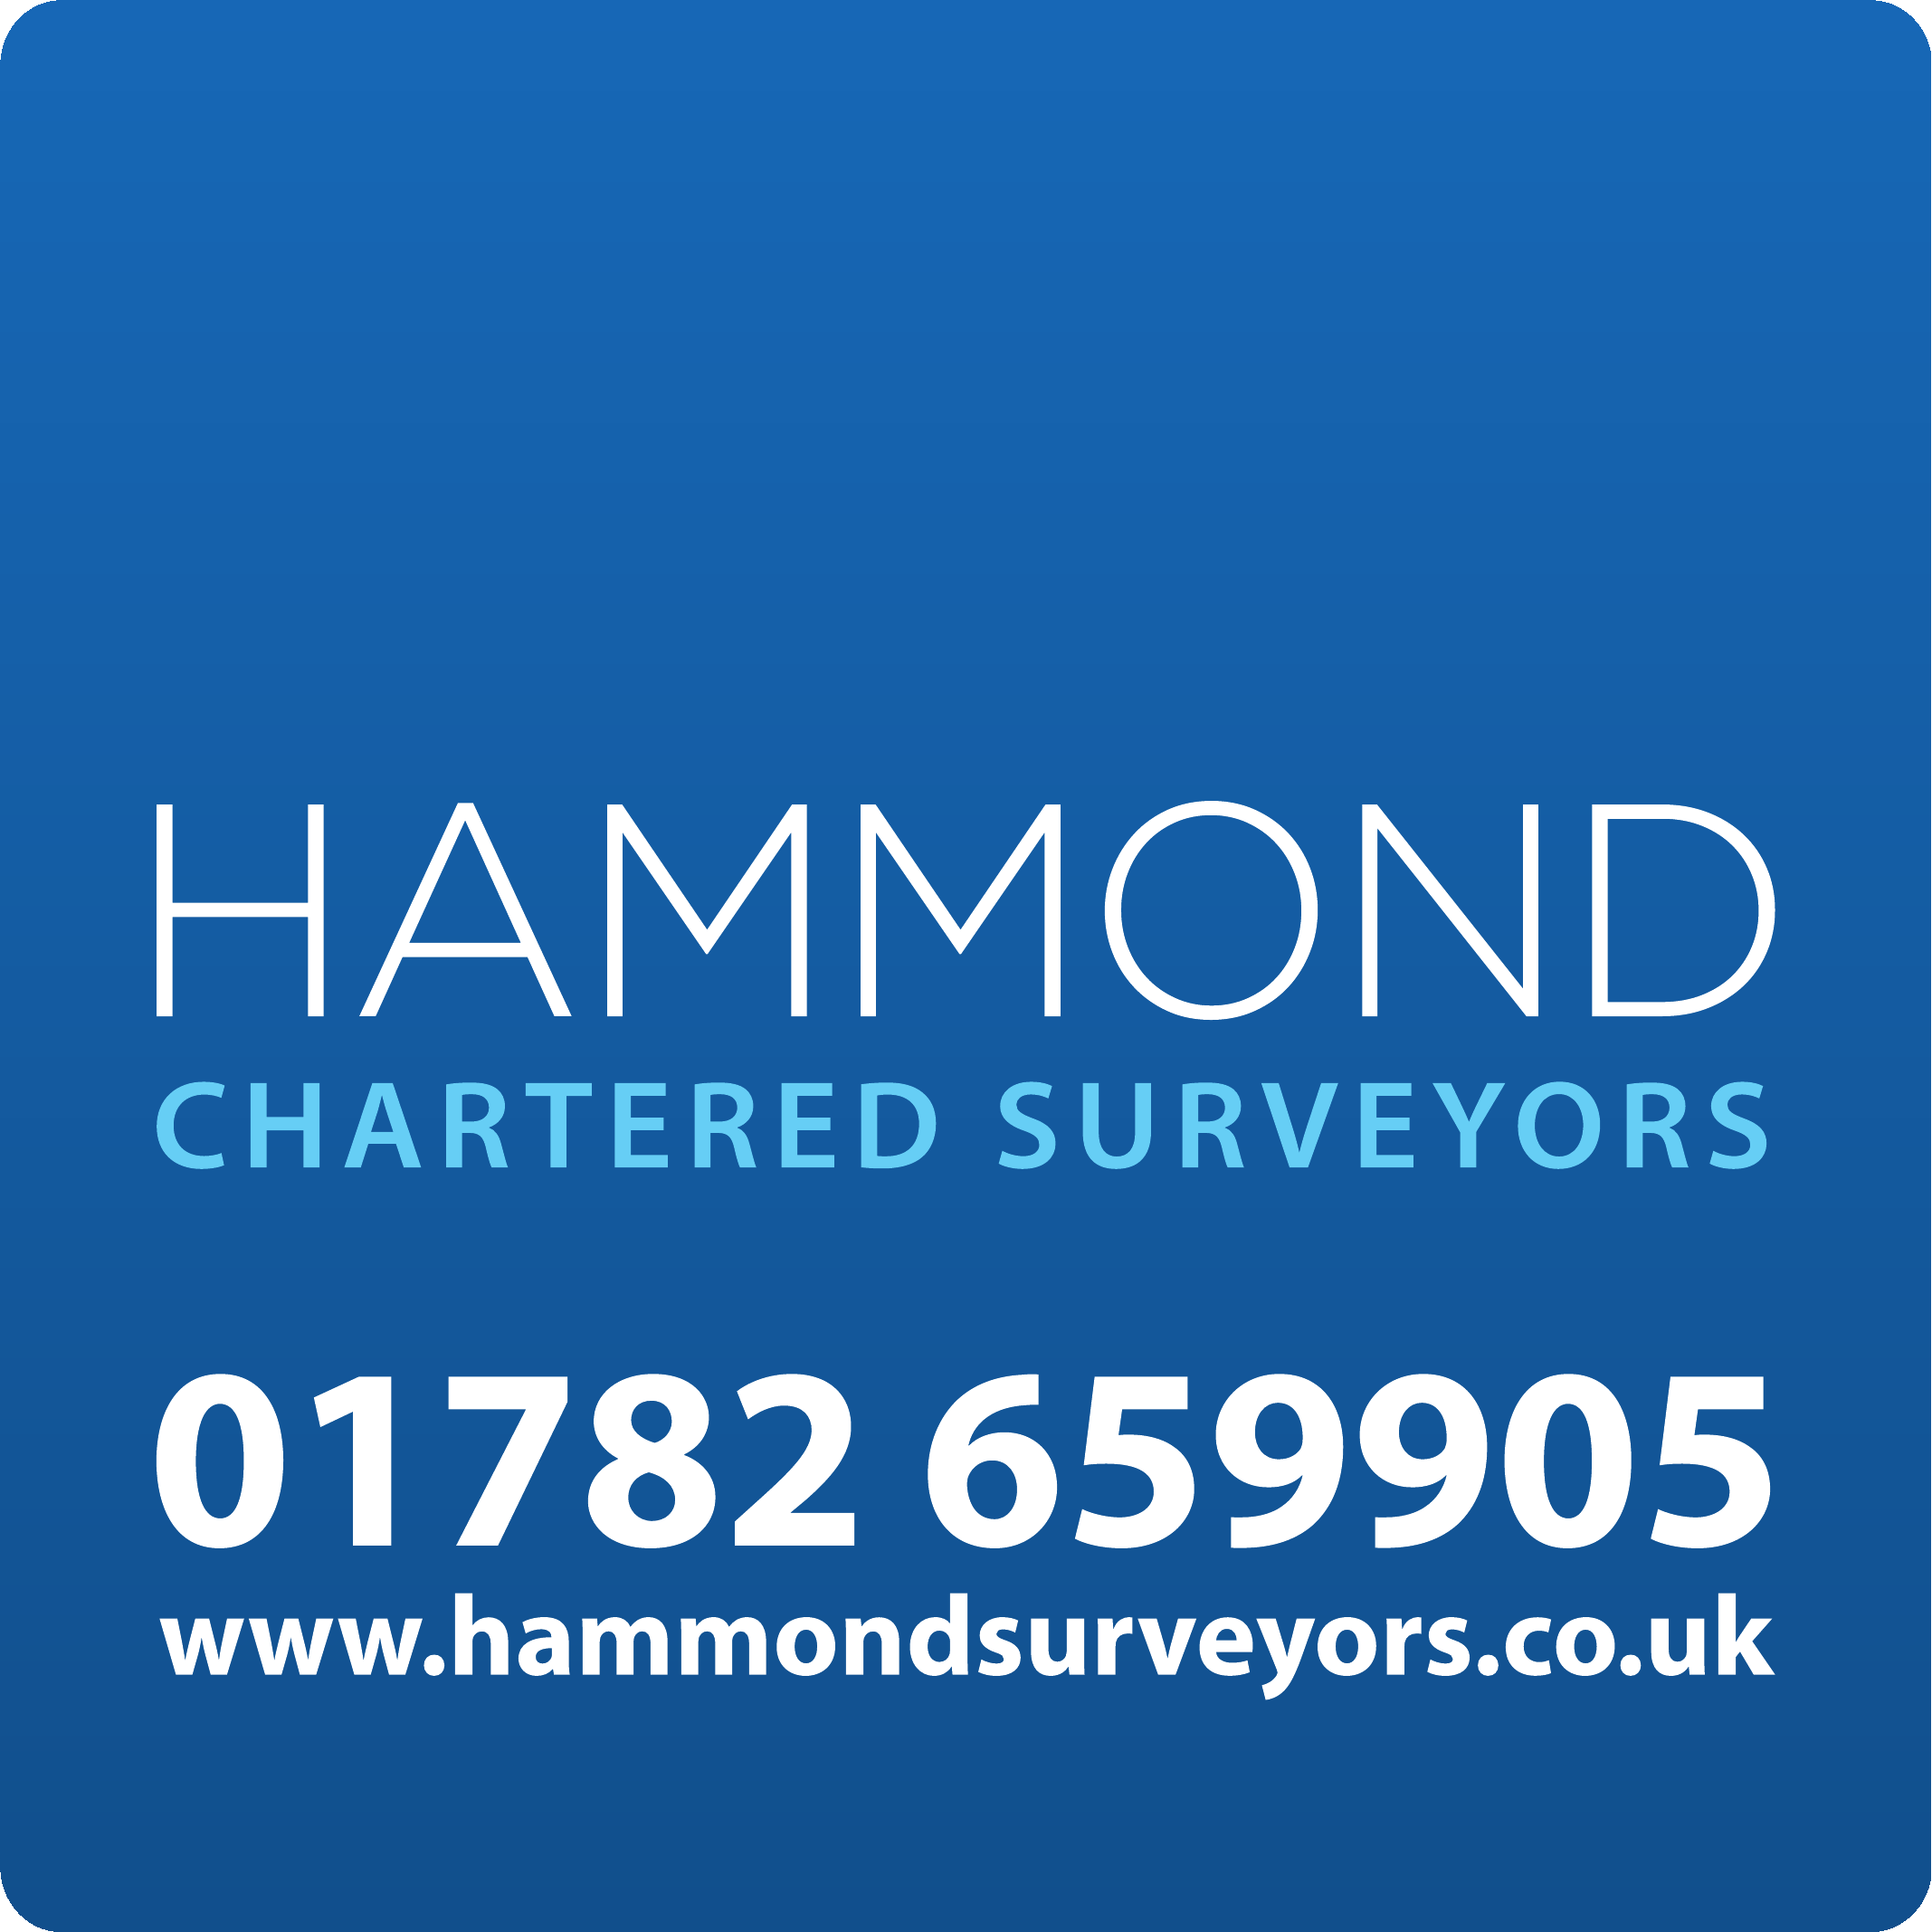 Hammond Chartered Surveyors